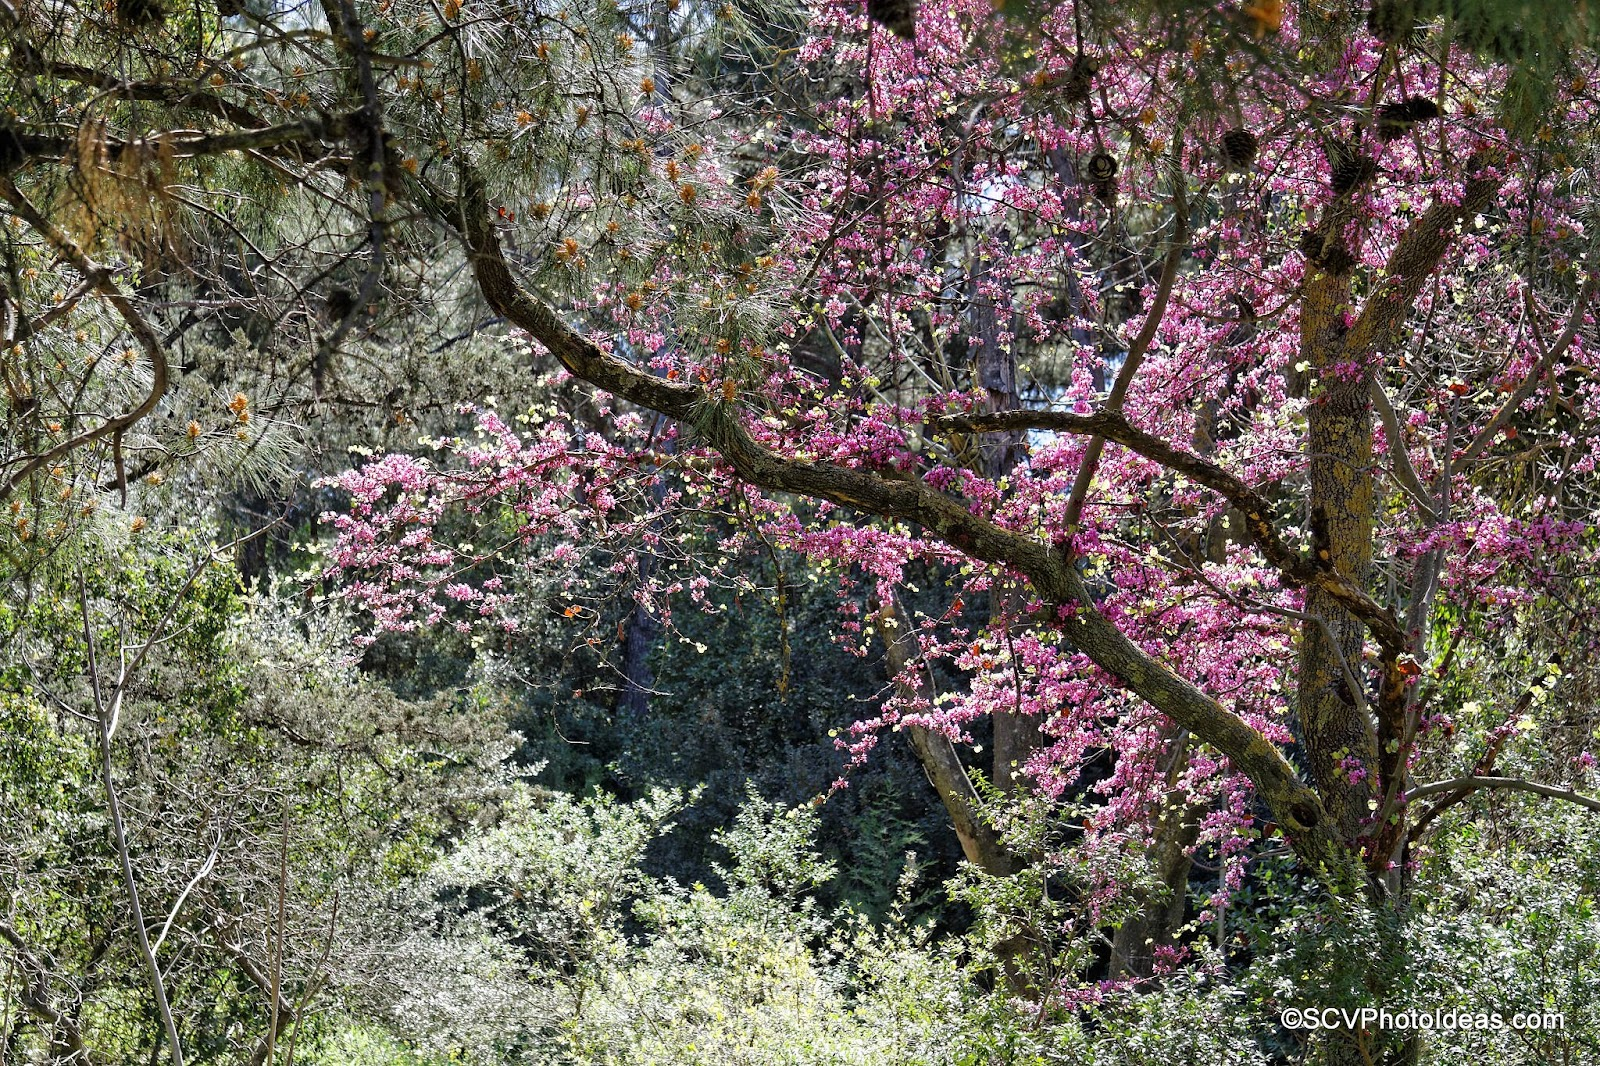 Blossoming Almond Tree in the park